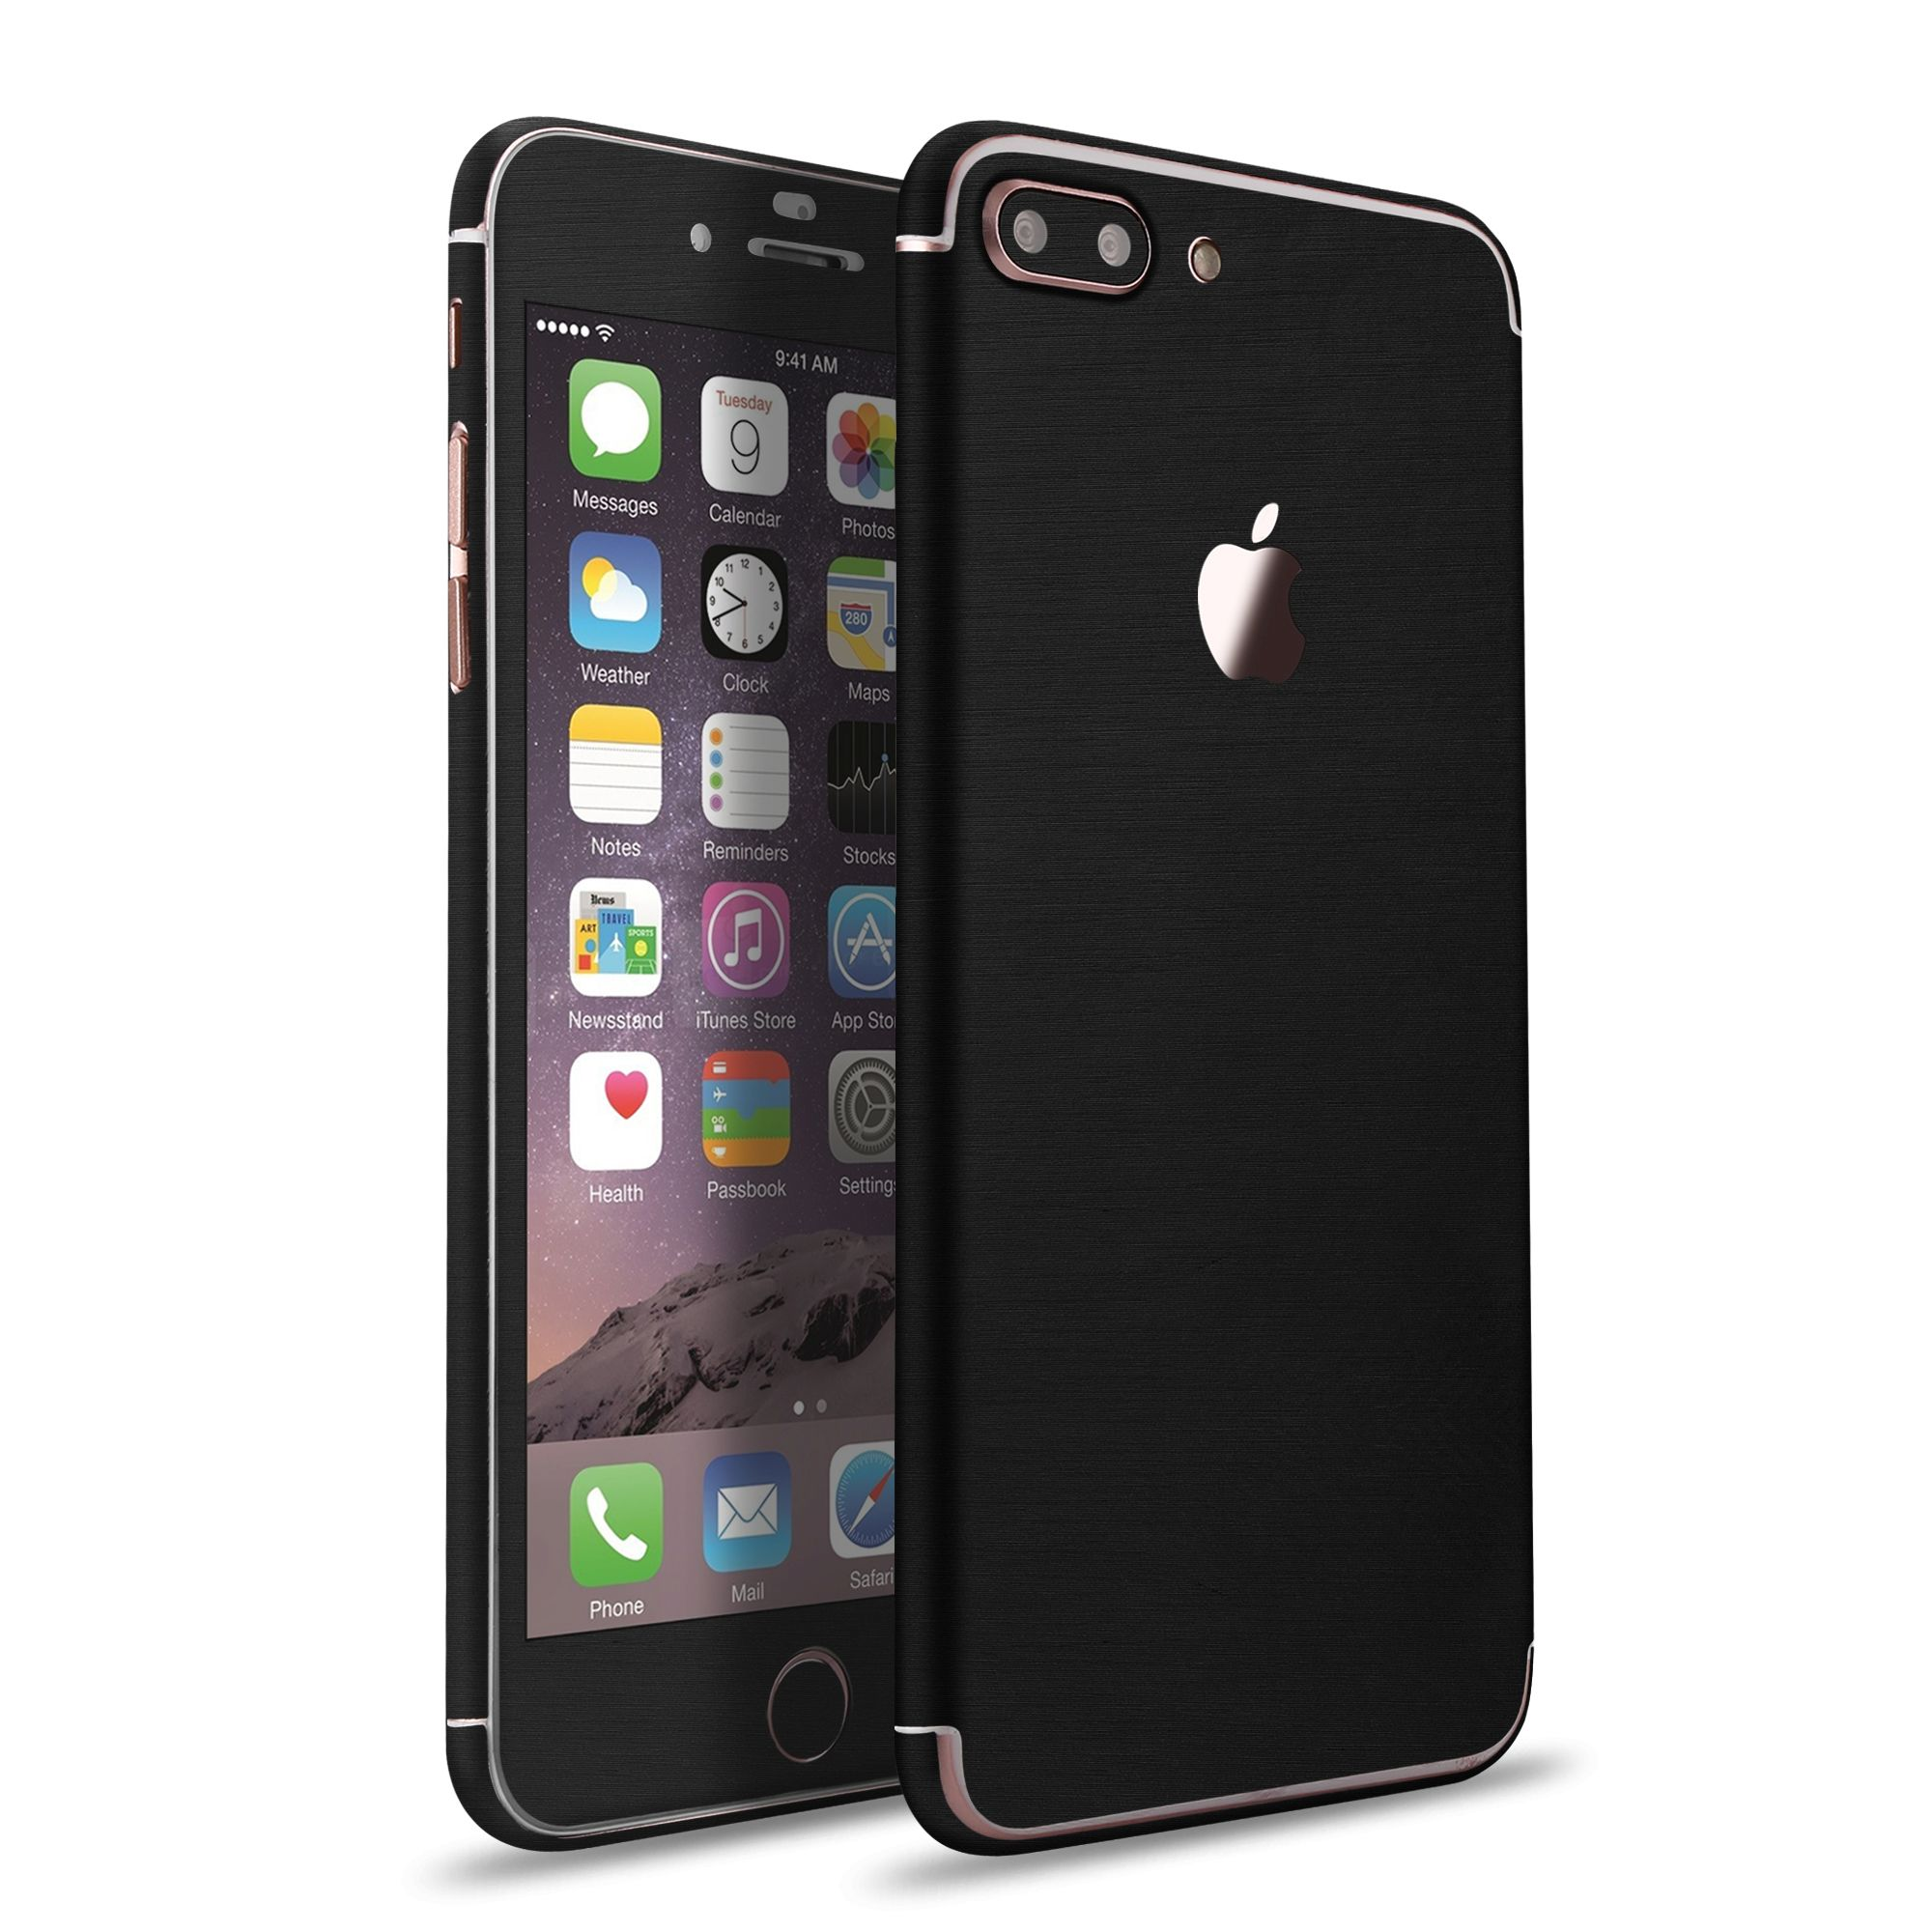 100 the iphone 9 plus huawei mate 9 compared iphone 7 plus 2 iphone y podrian preordenarse a. Black Bedroom Furniture Sets. Home Design Ideas